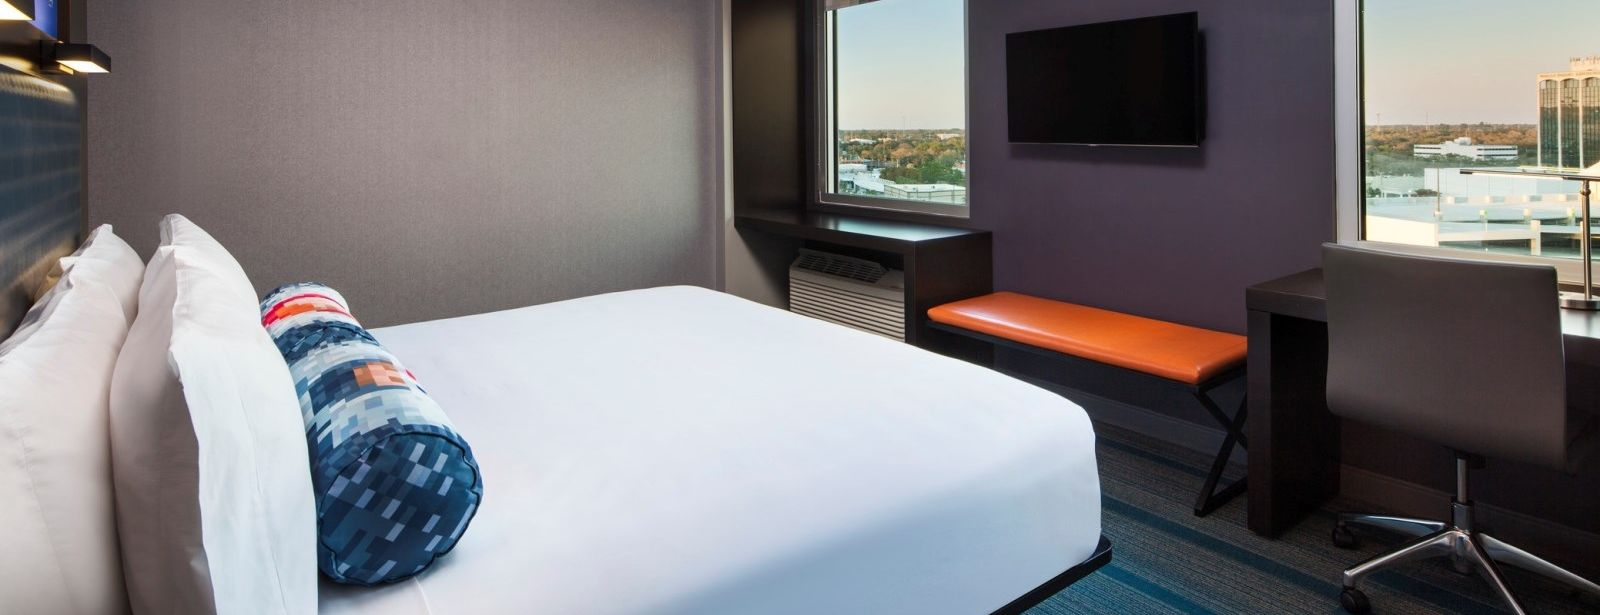 Sarasota Accommodations - Aloft King Room